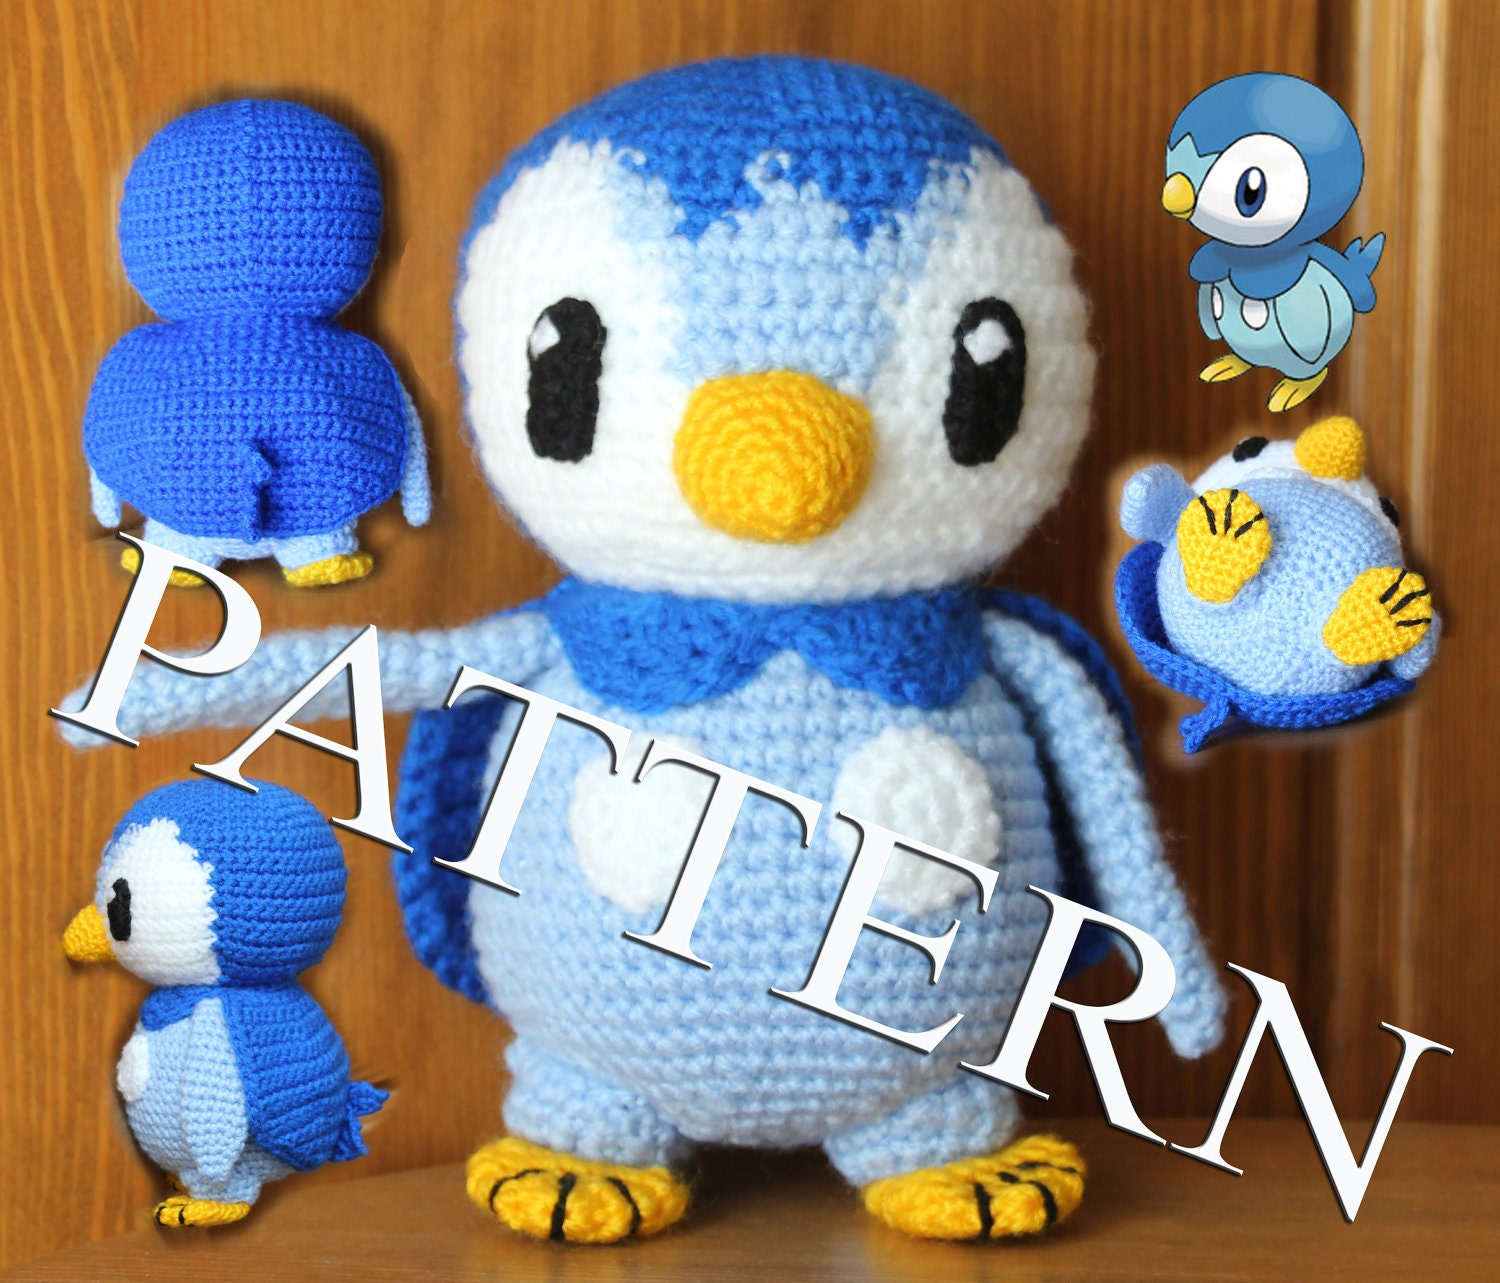 Crochet Patterns Pokemon Characters : Crochet Pokemon Piplup pattern in PDF